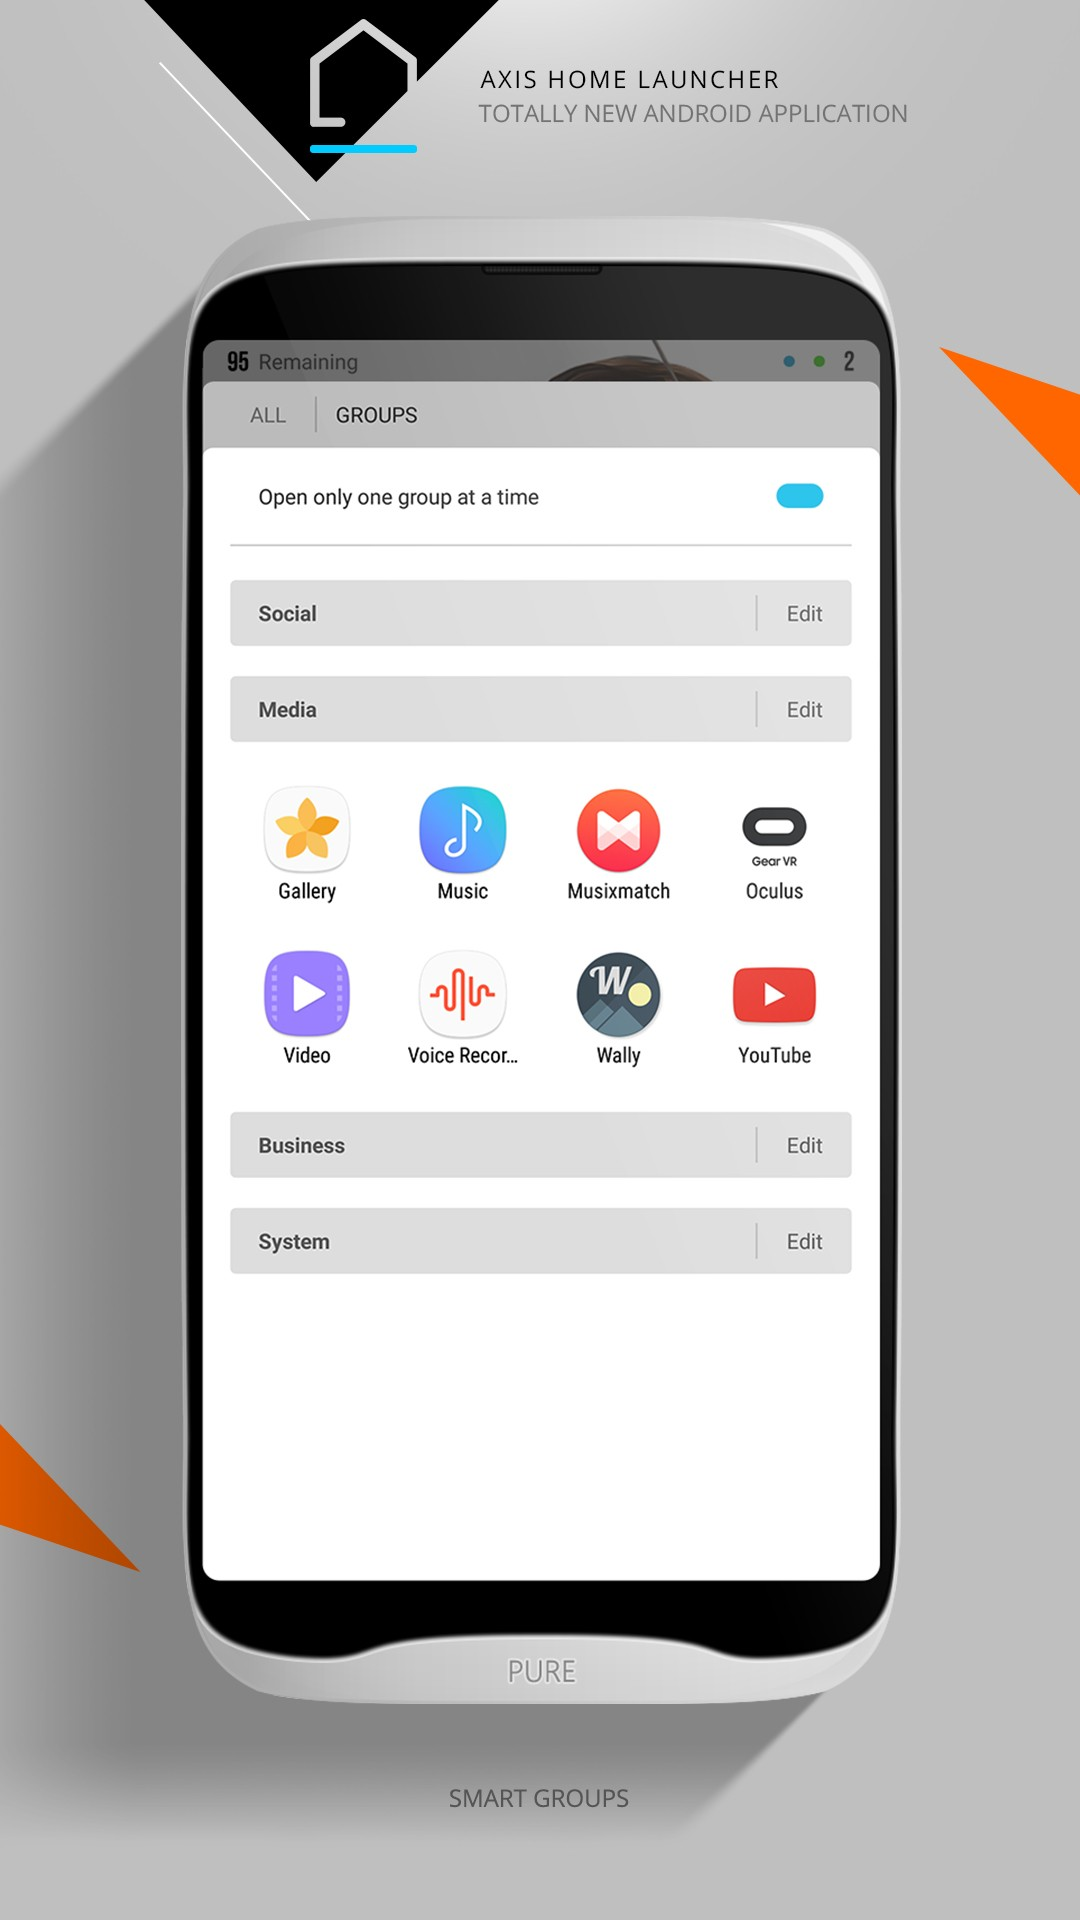 Axis Home Launcher